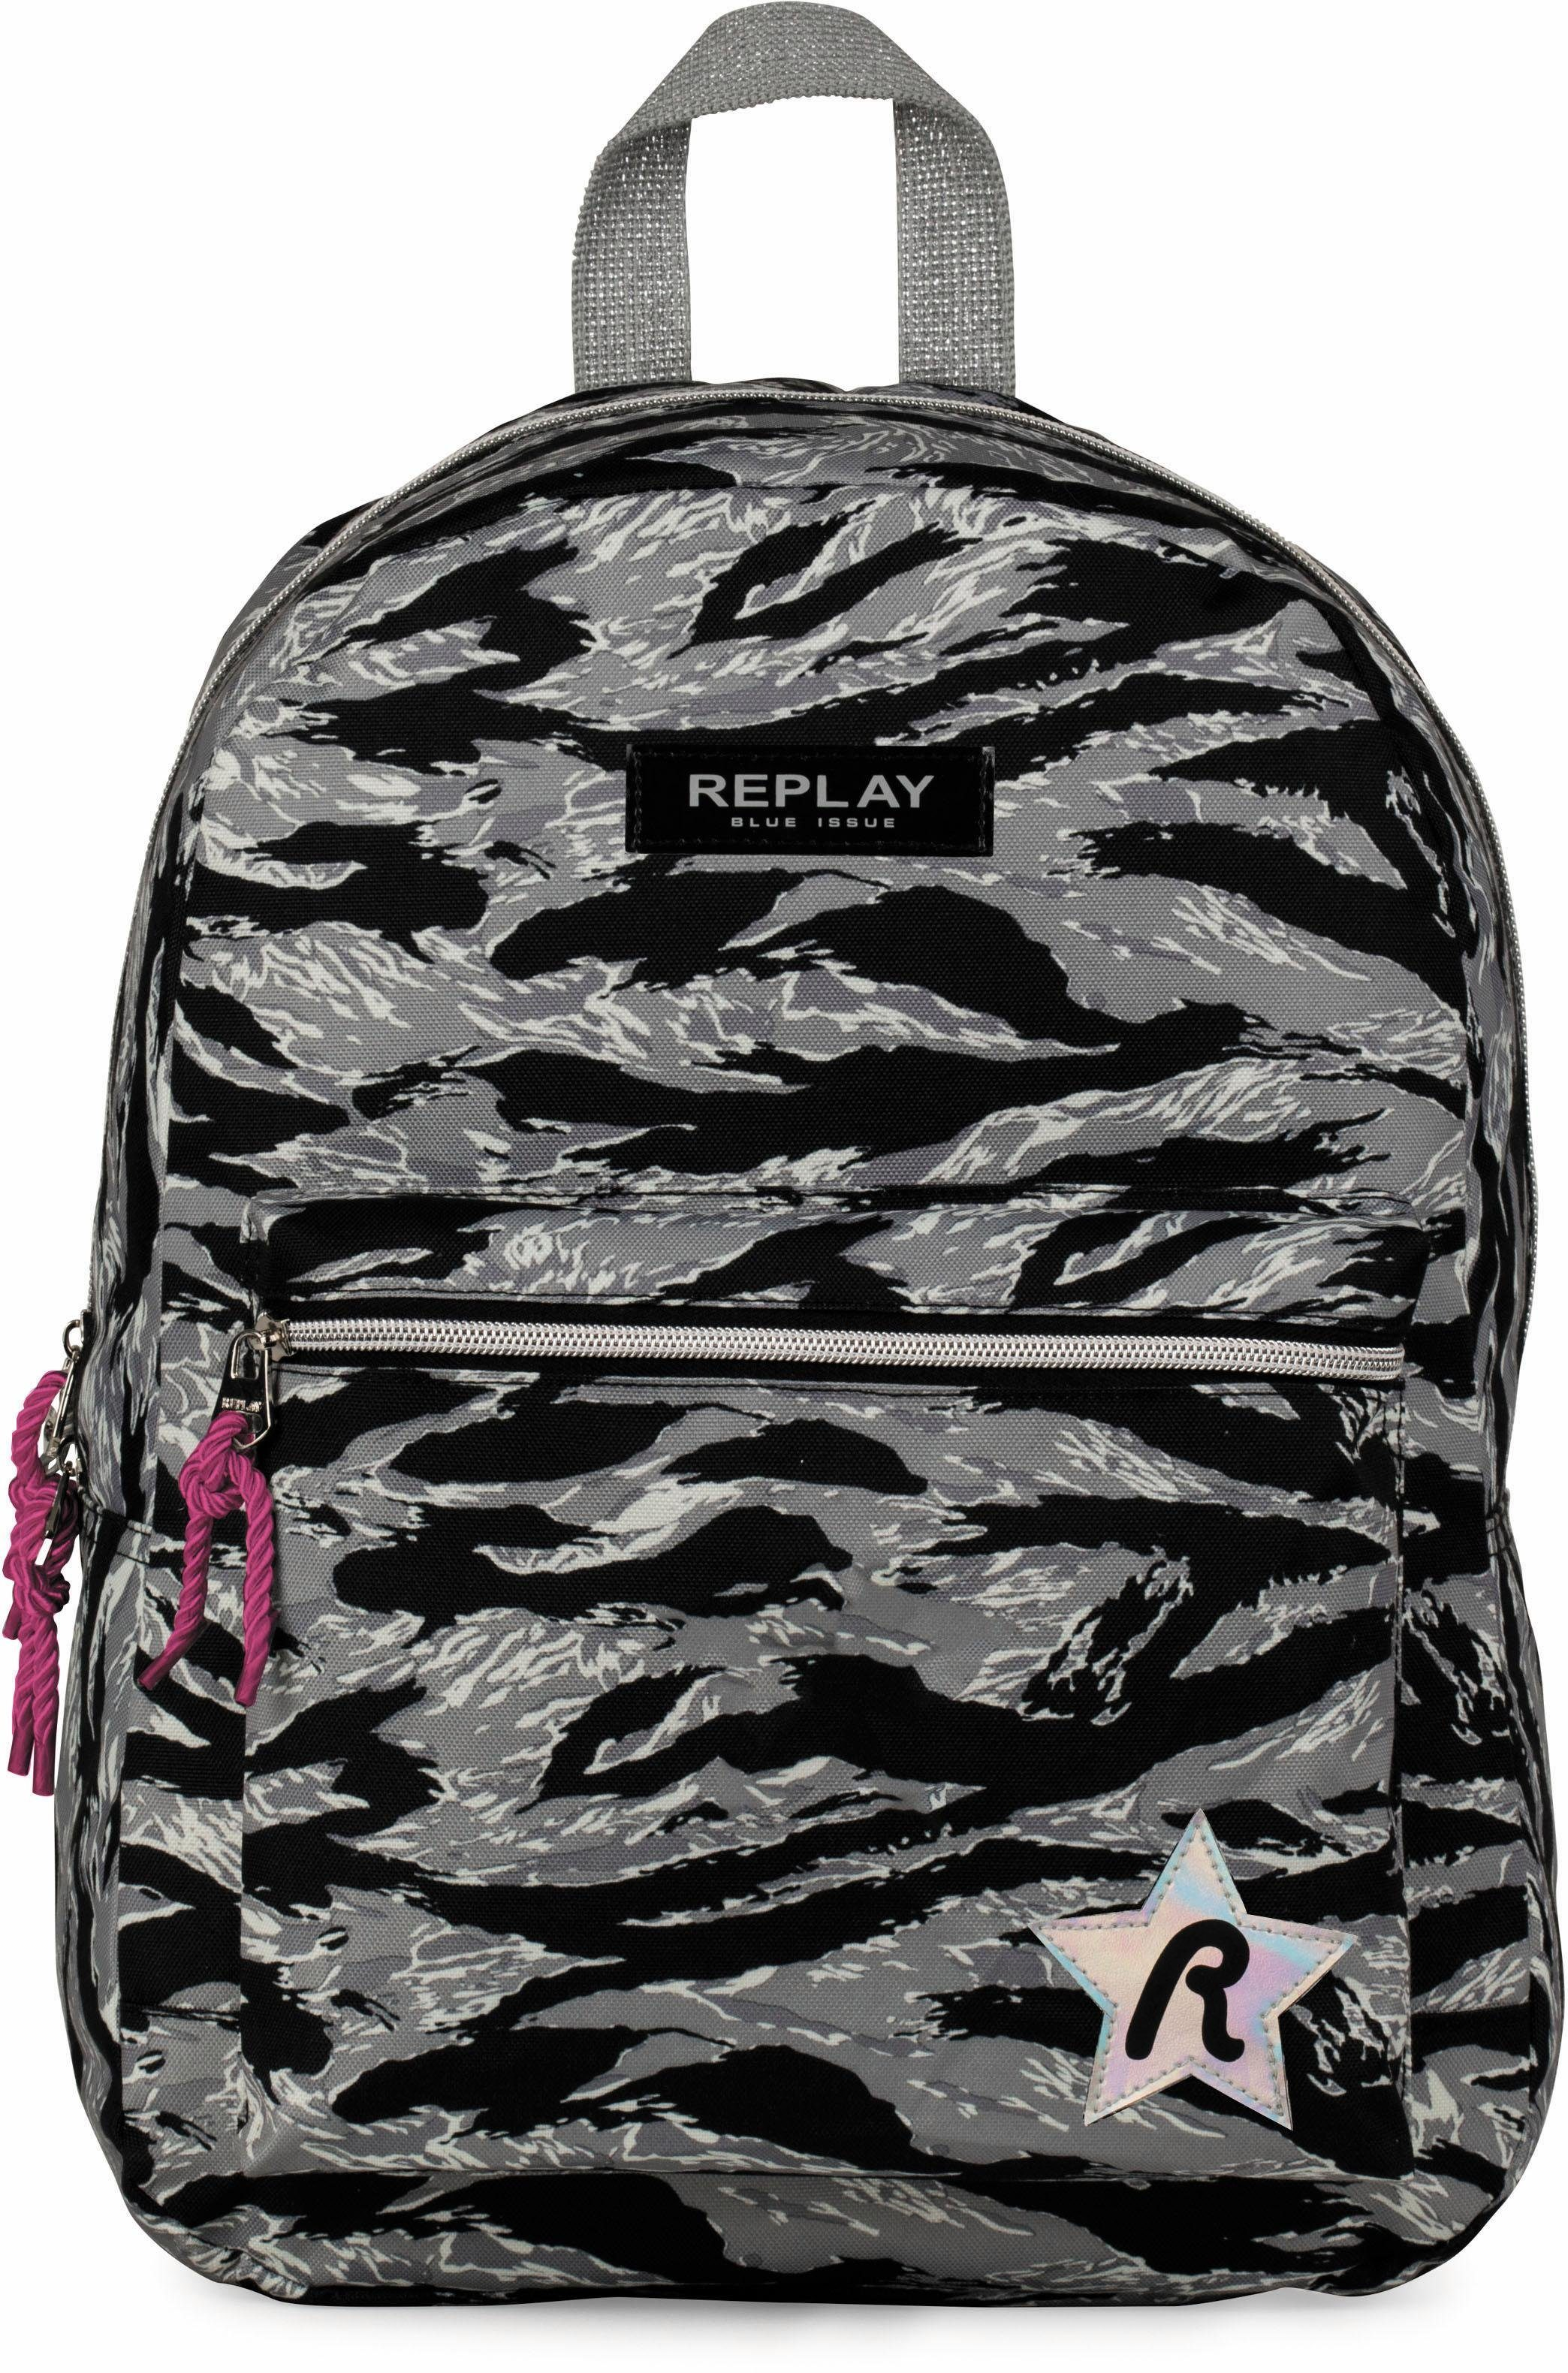 REPLAY Rucksack, »Fashion Girls, grau camo«